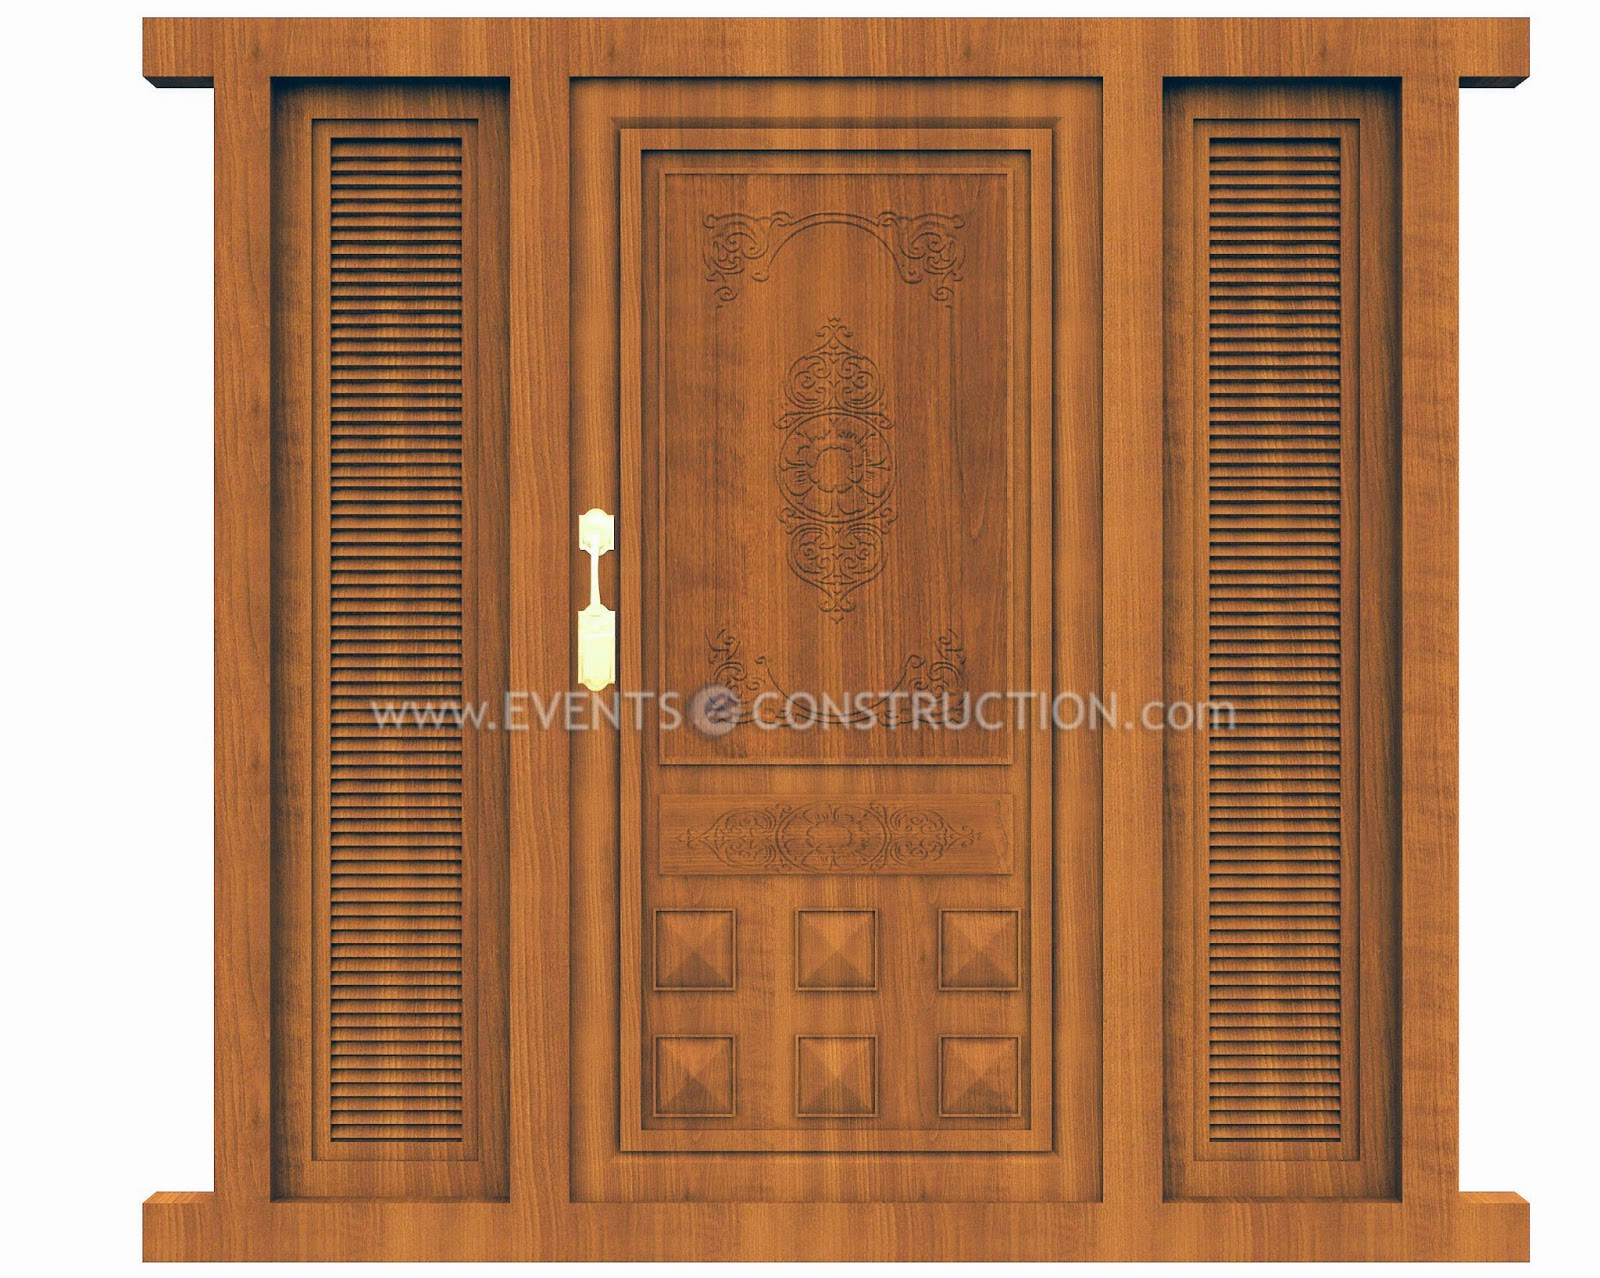 Evens construction pvt ltd wooden main door design for Main door design of wood